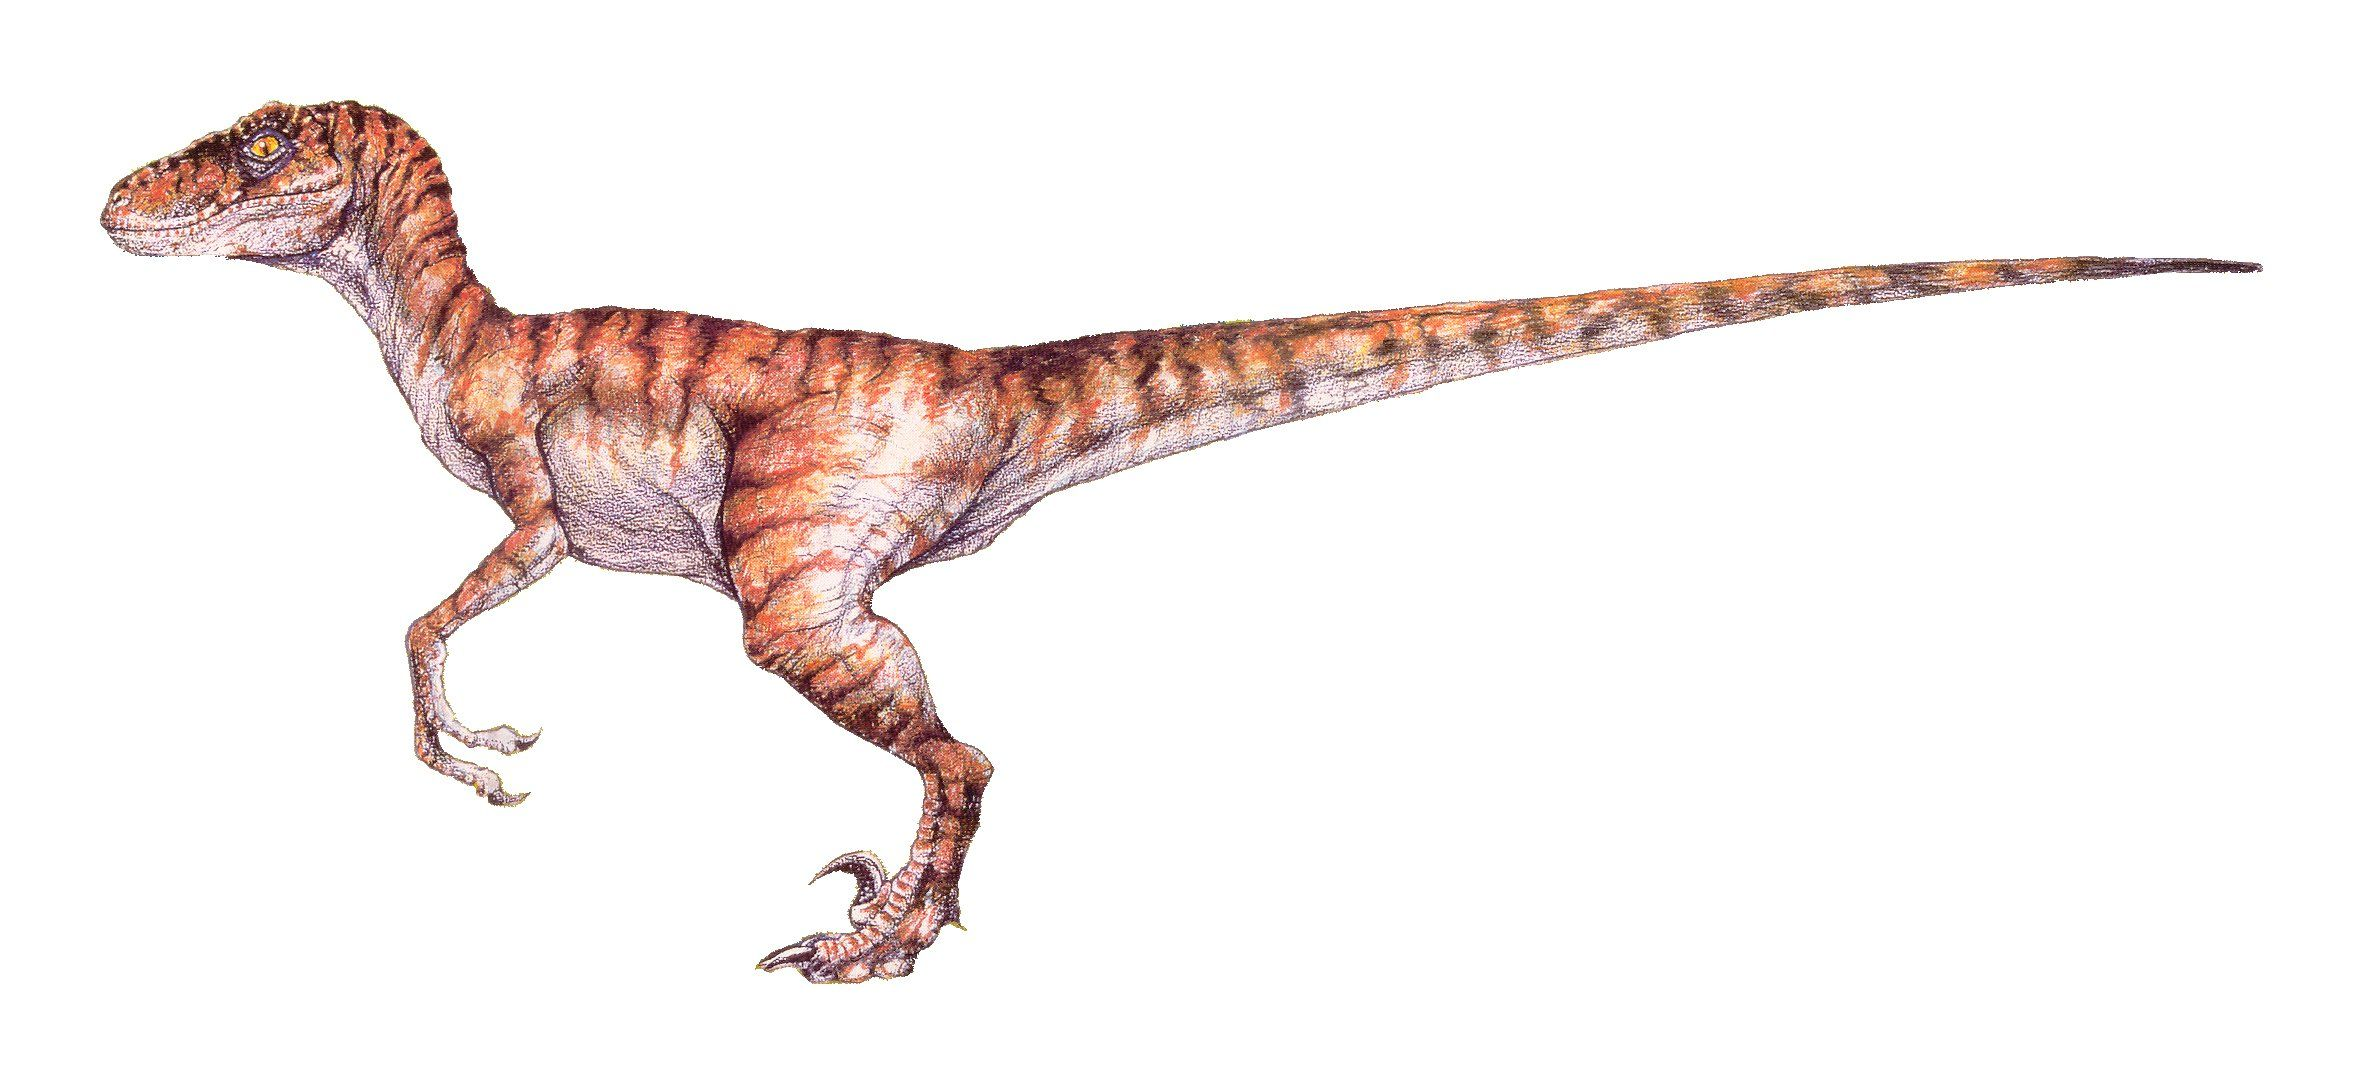 Raptor dinosaur google search more tattoo ideas raptor dinosaur jurassic park dinosaur - Raptor dinosaure ...